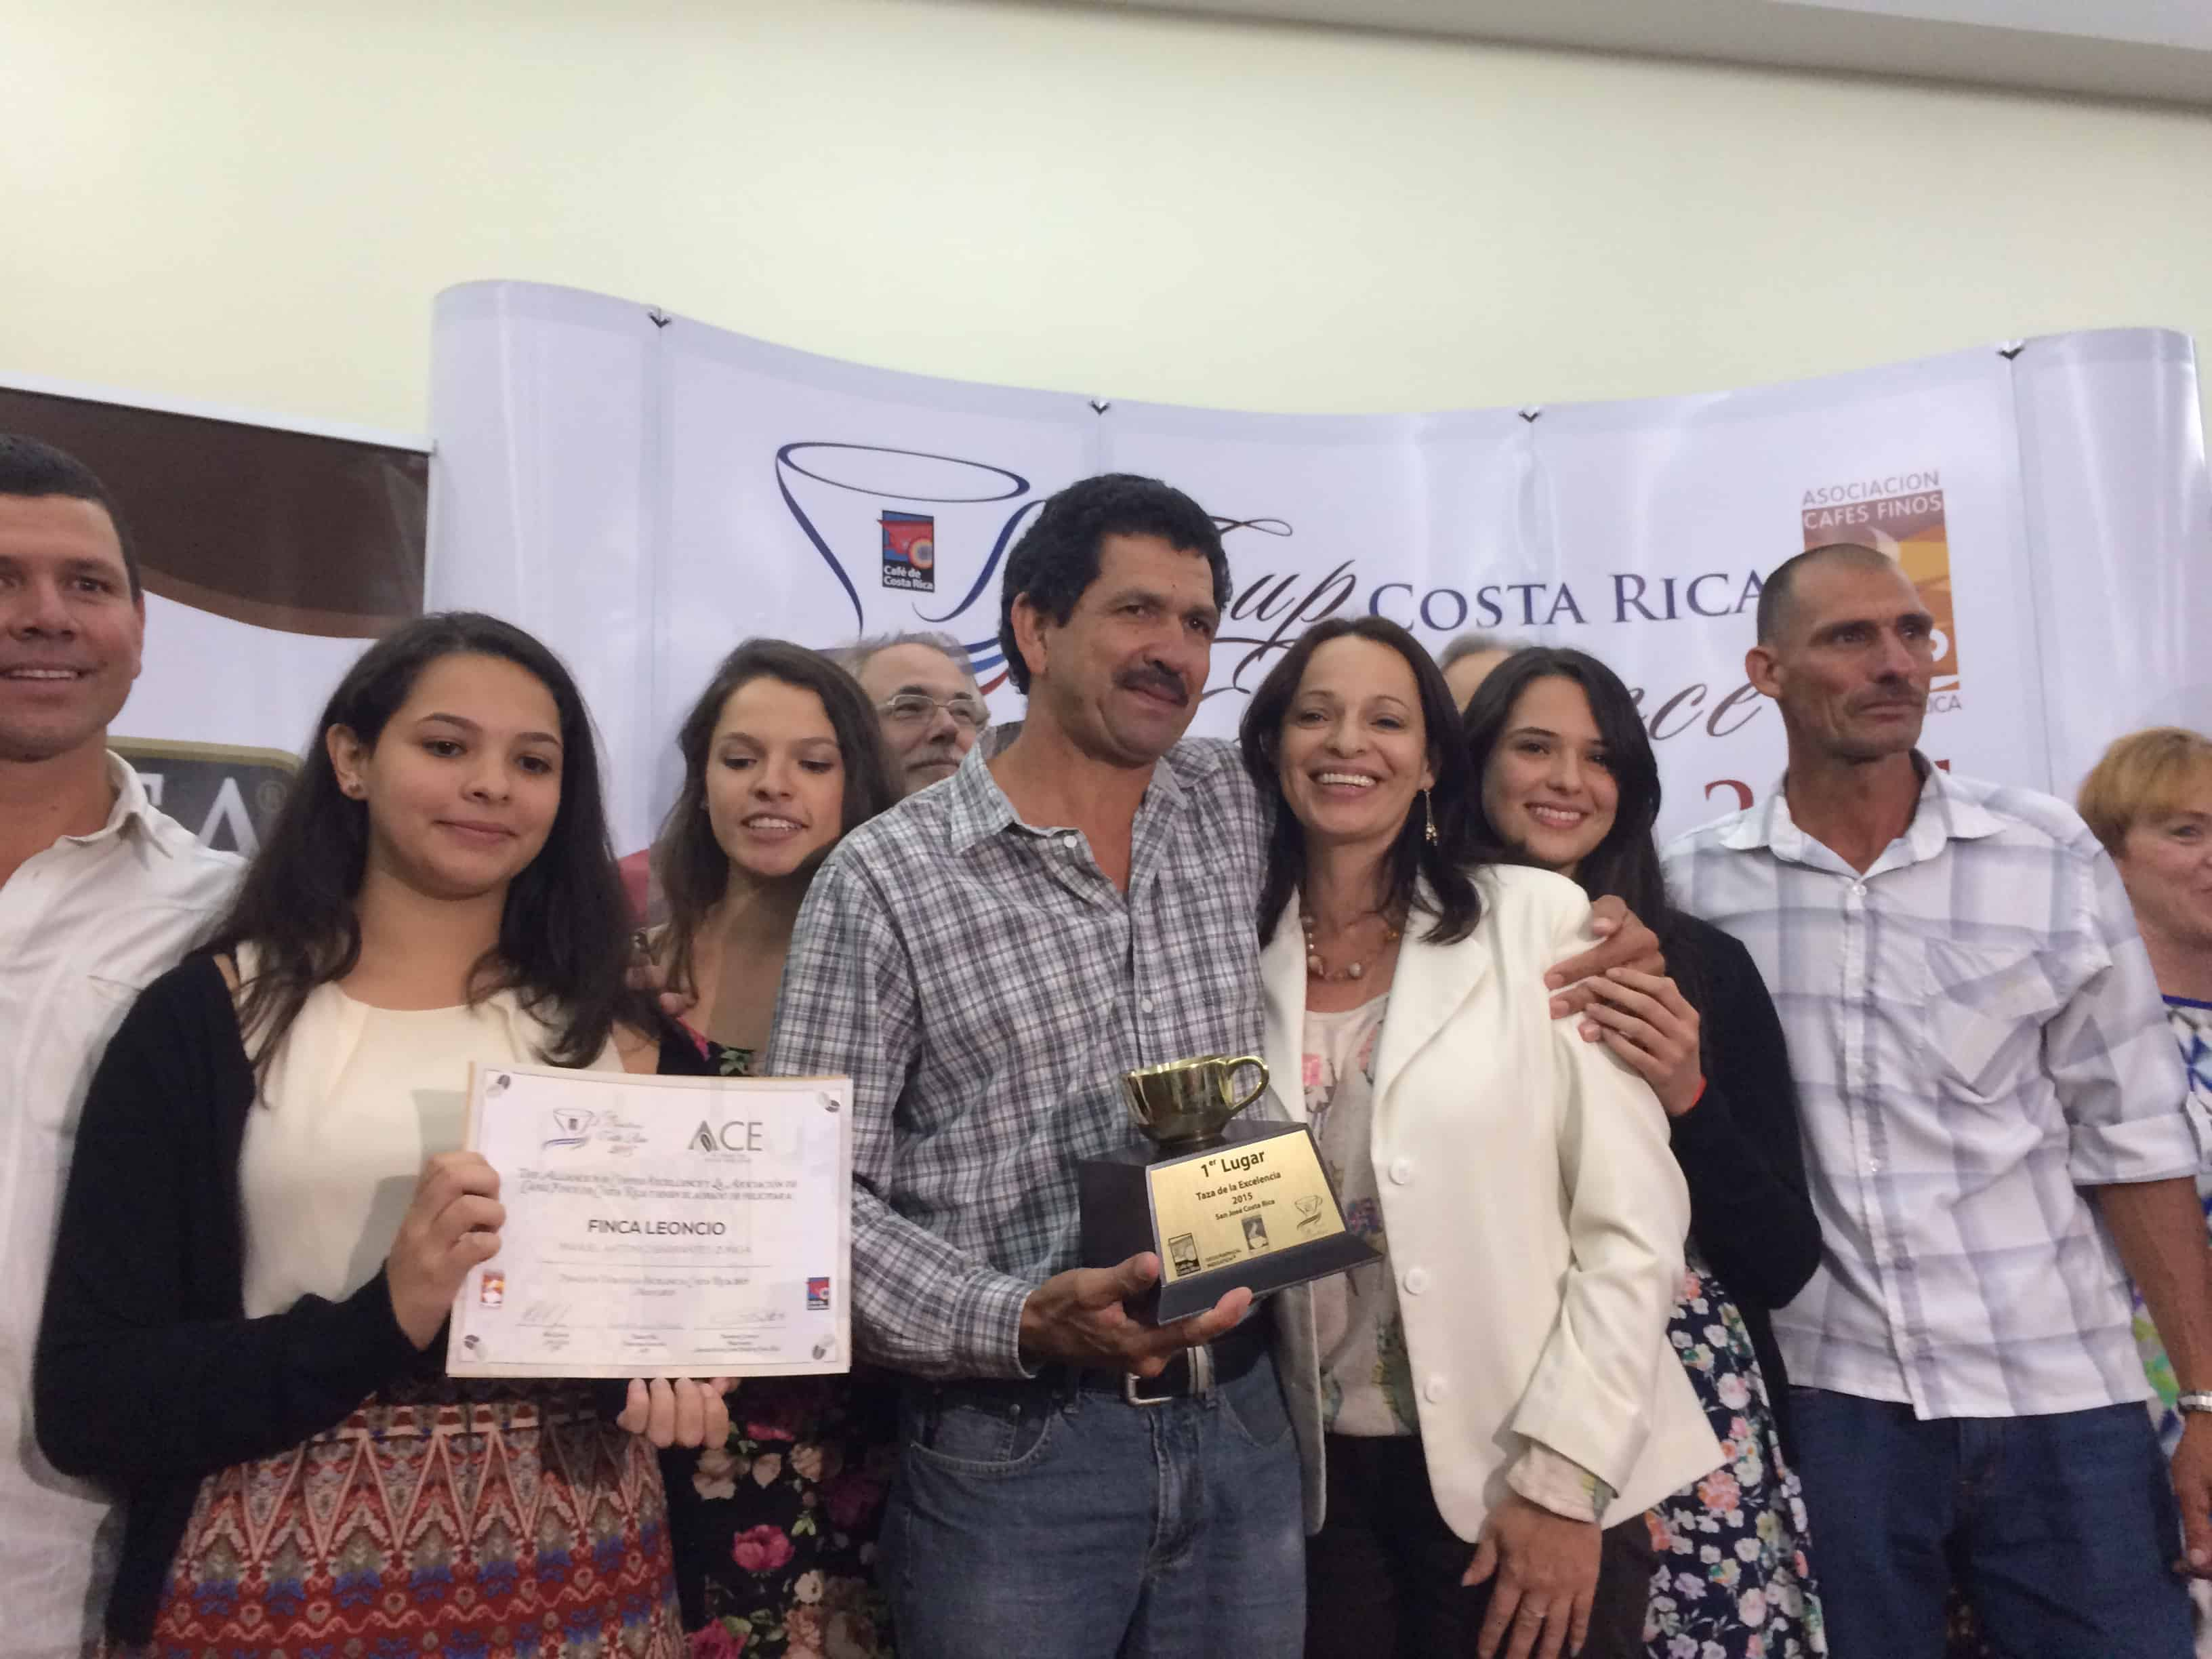 Manuel Antonio Barrantes, the winner of the Cup of Excellence.